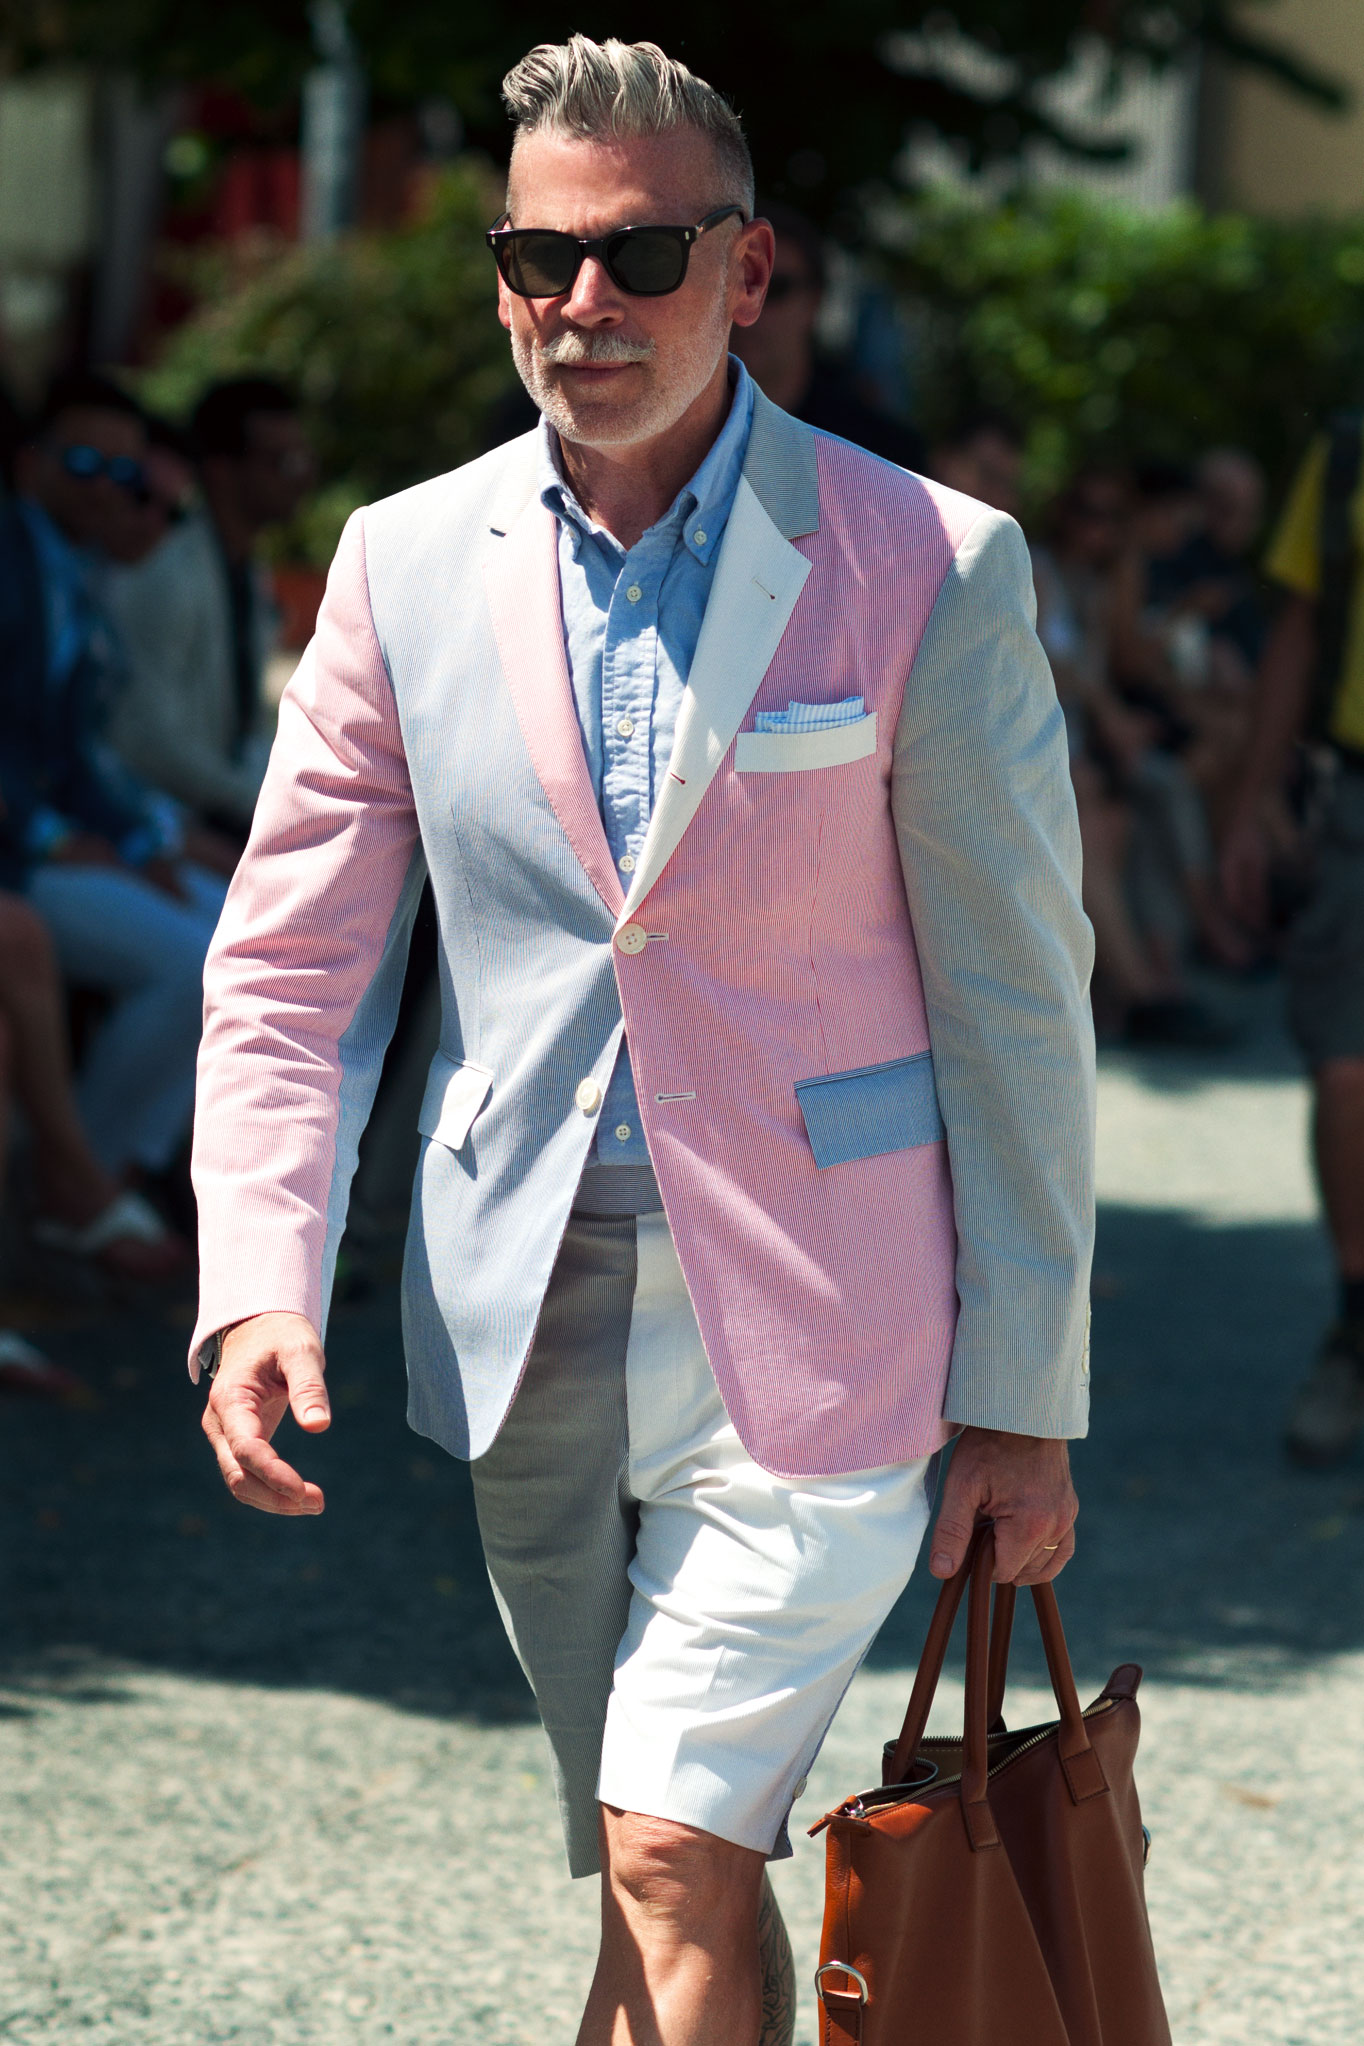 Pitti Uomo 82 Nickelson Wooster